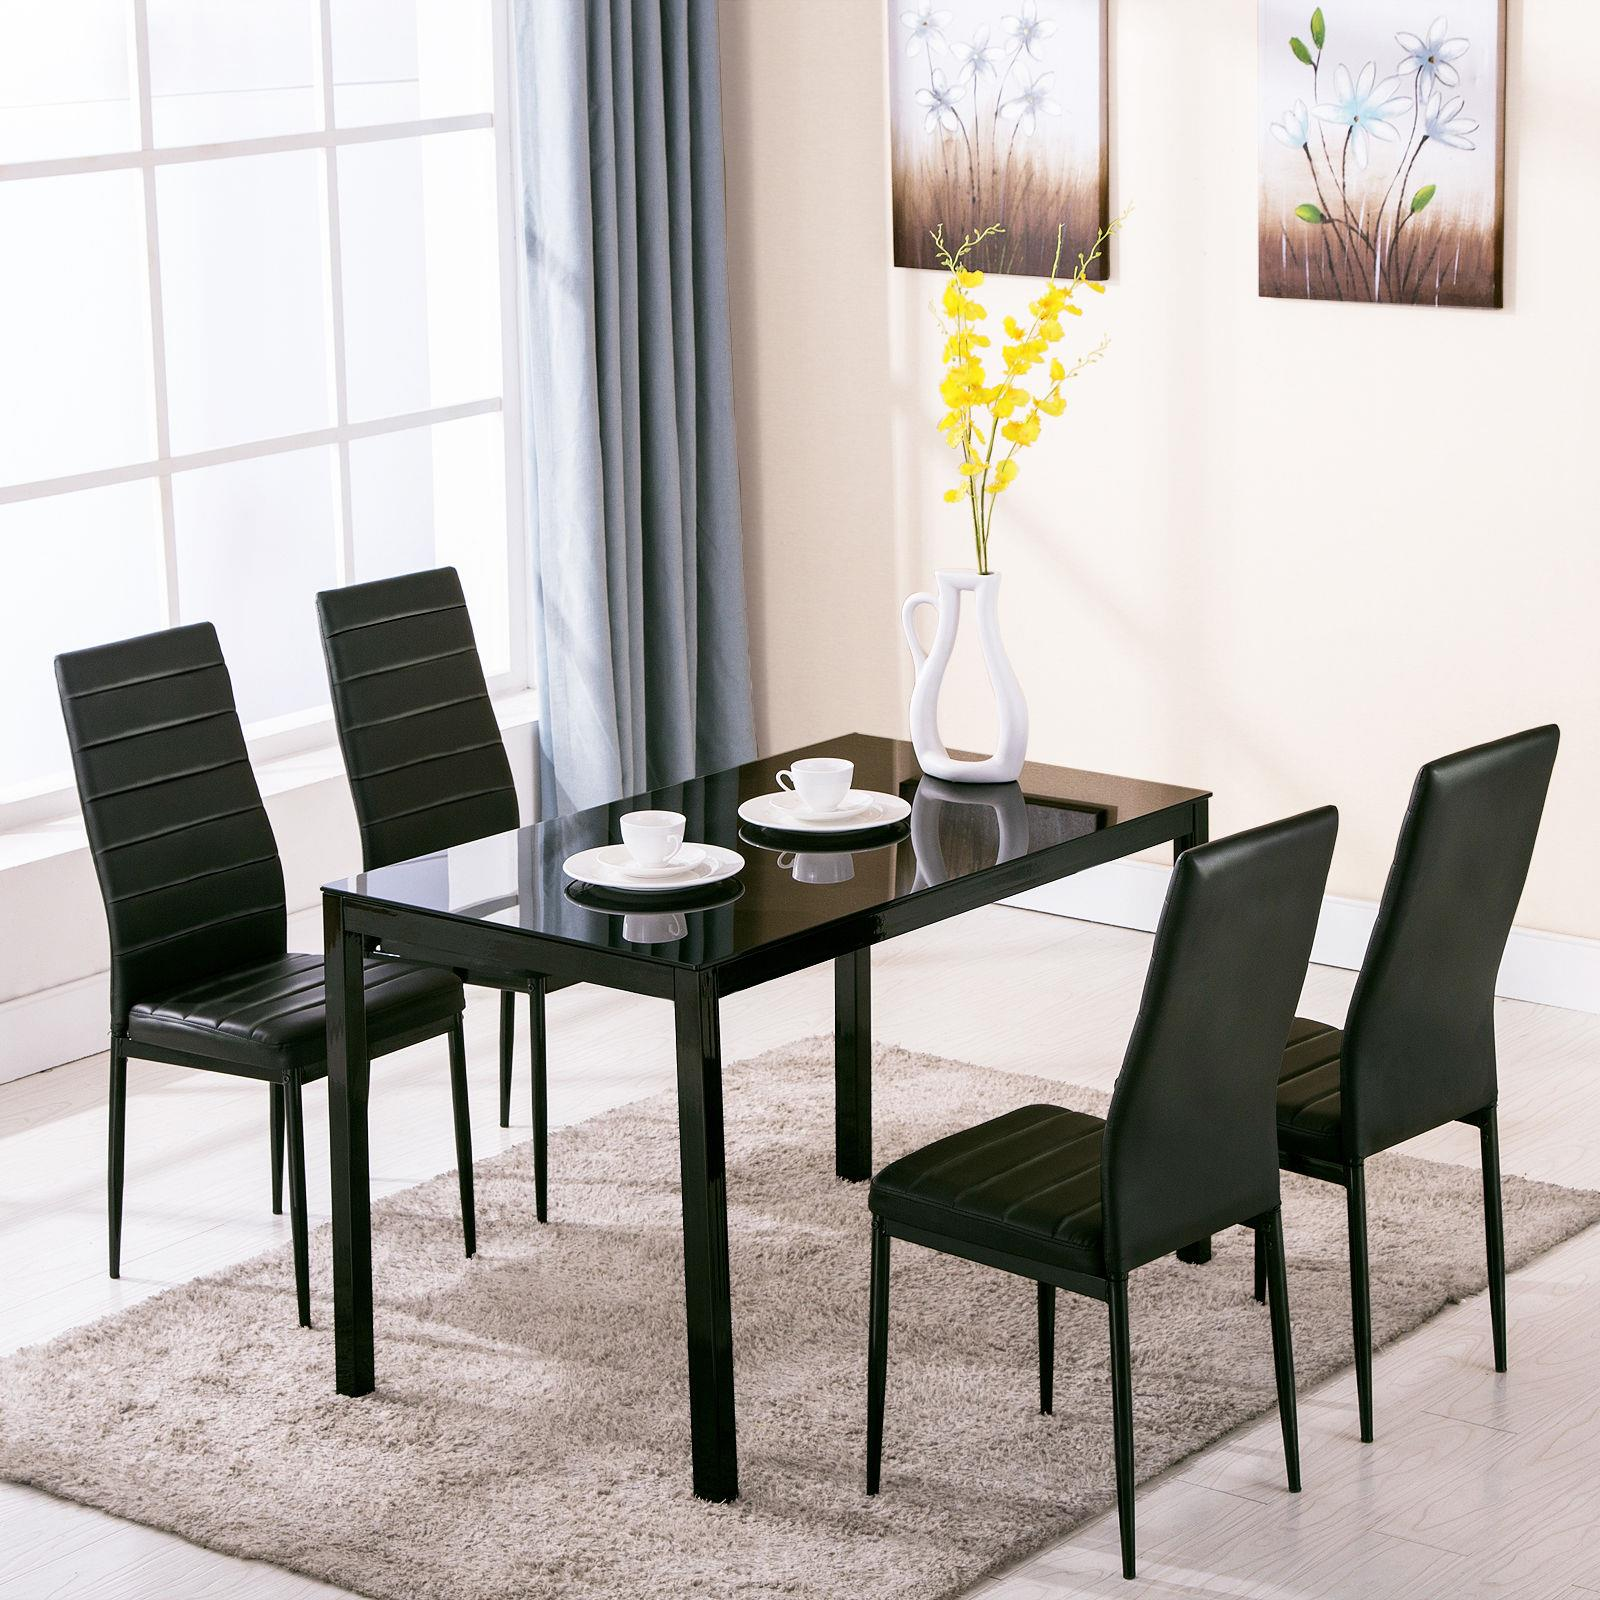 Details About Set Of Glass Metal Dining Table Furniture And 4 Chairs Breakfast Kitchen Room